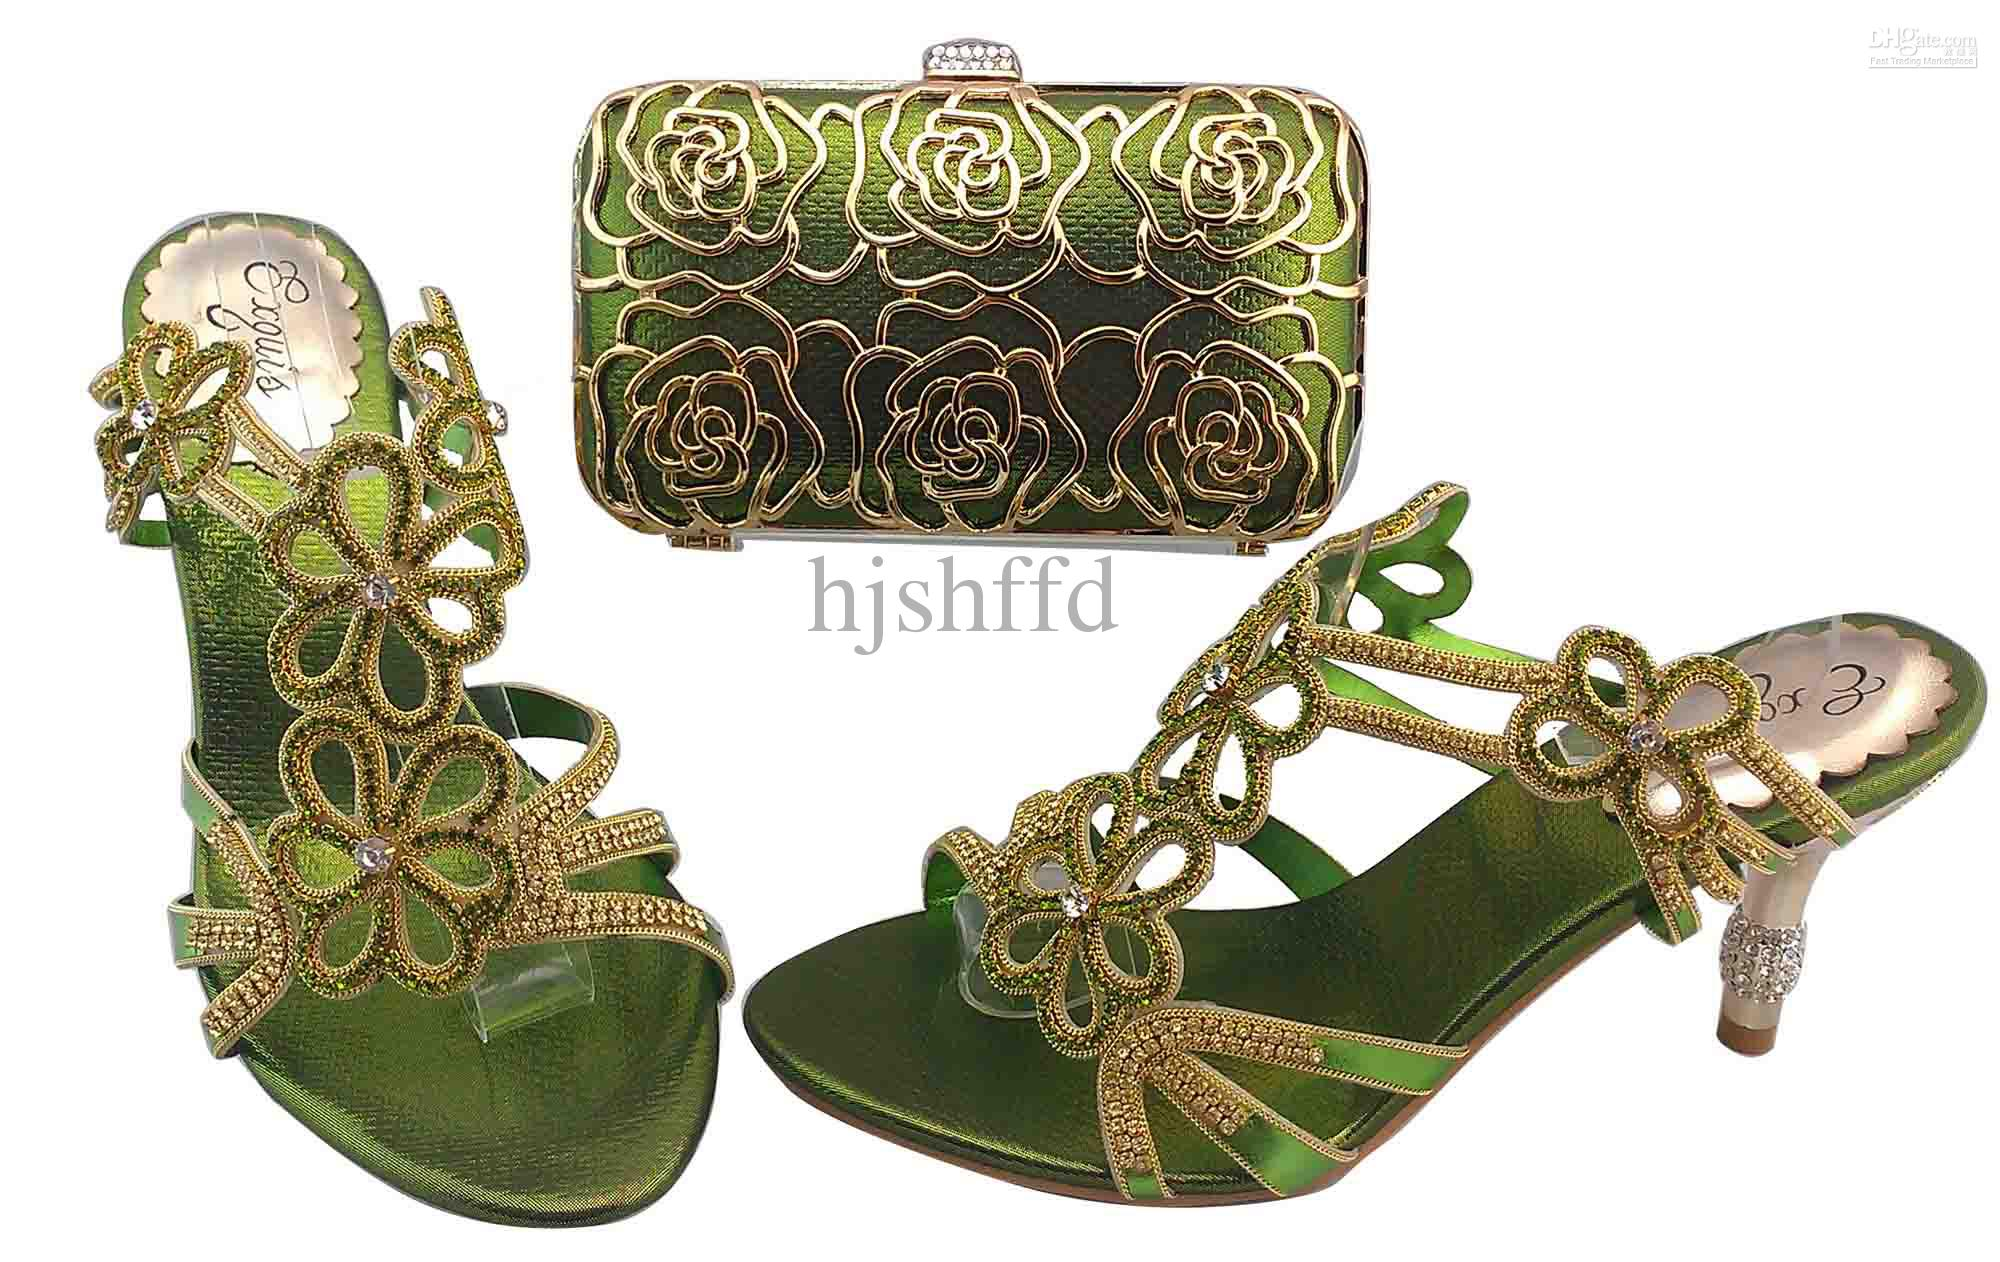 Online shoes. Made in italy shoes online